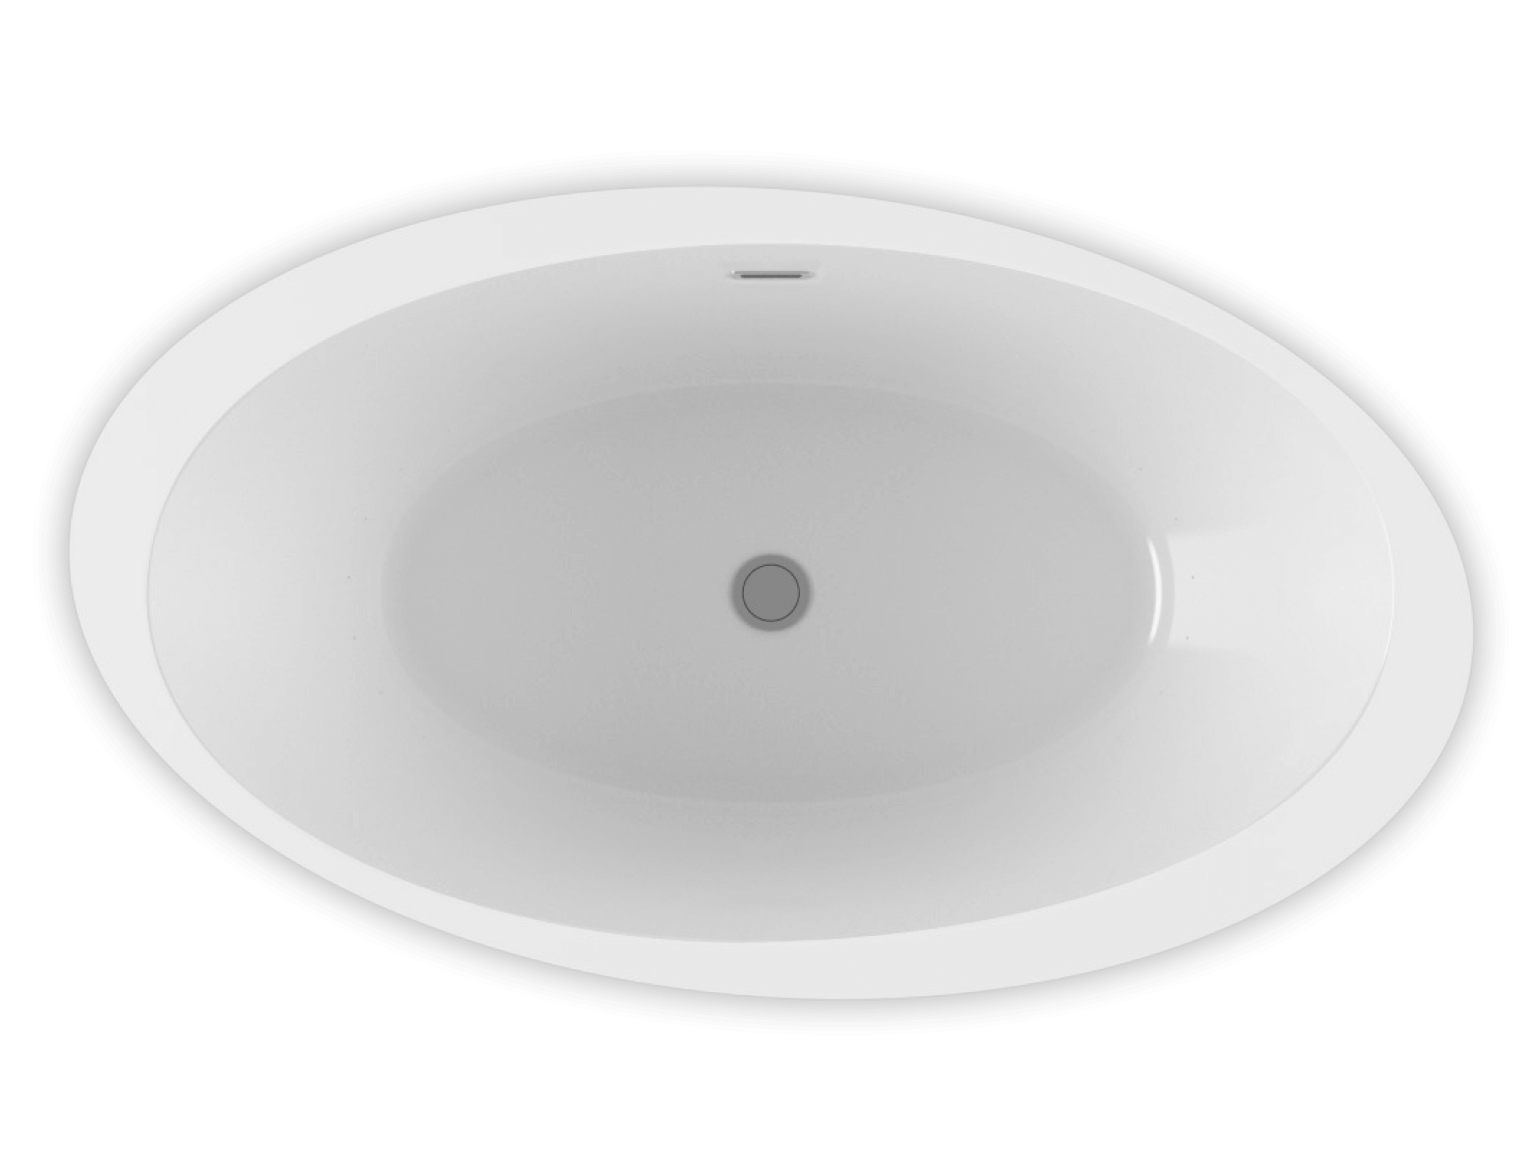 Opalia 6839 Oblique Ellipse Left air jet bathtub for your modern bathroom